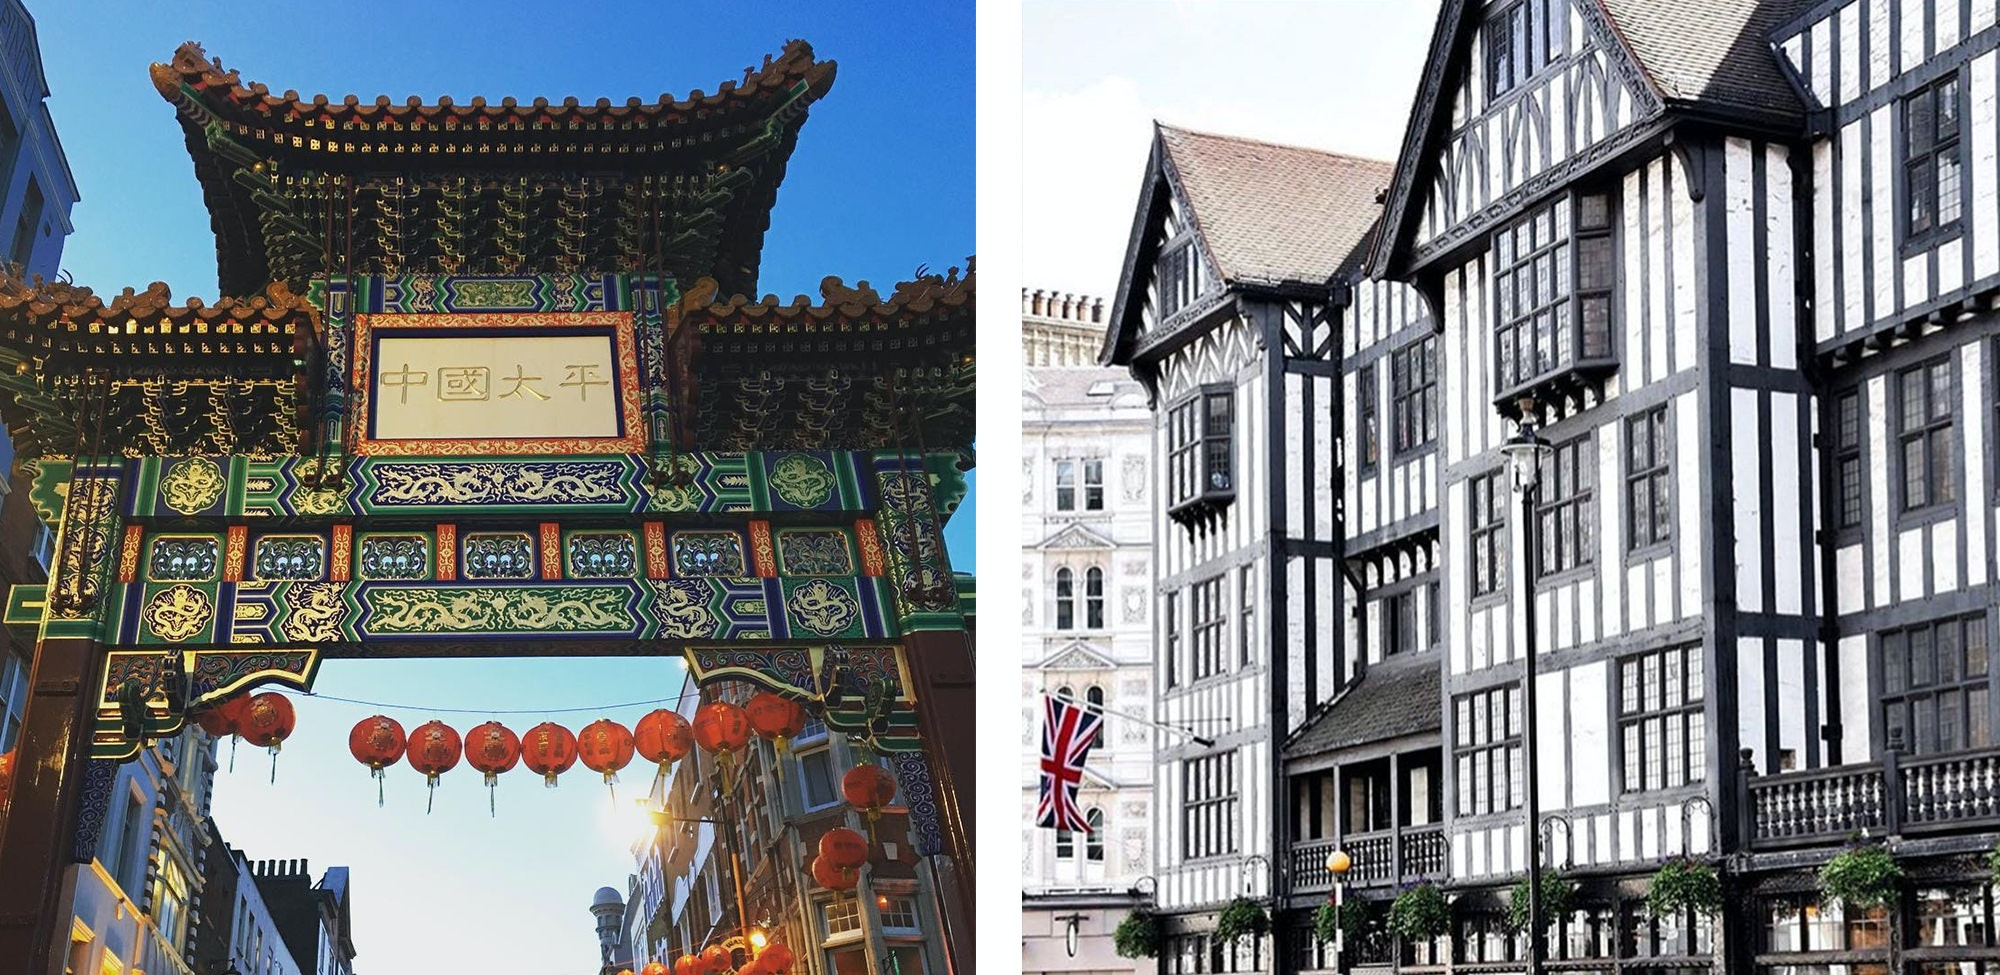 Chinatown is a famous area in shopping, best to get a chinese feeling while staying in central London. Try some bubble tea or buy some typical chinese products at the local supermarkets.